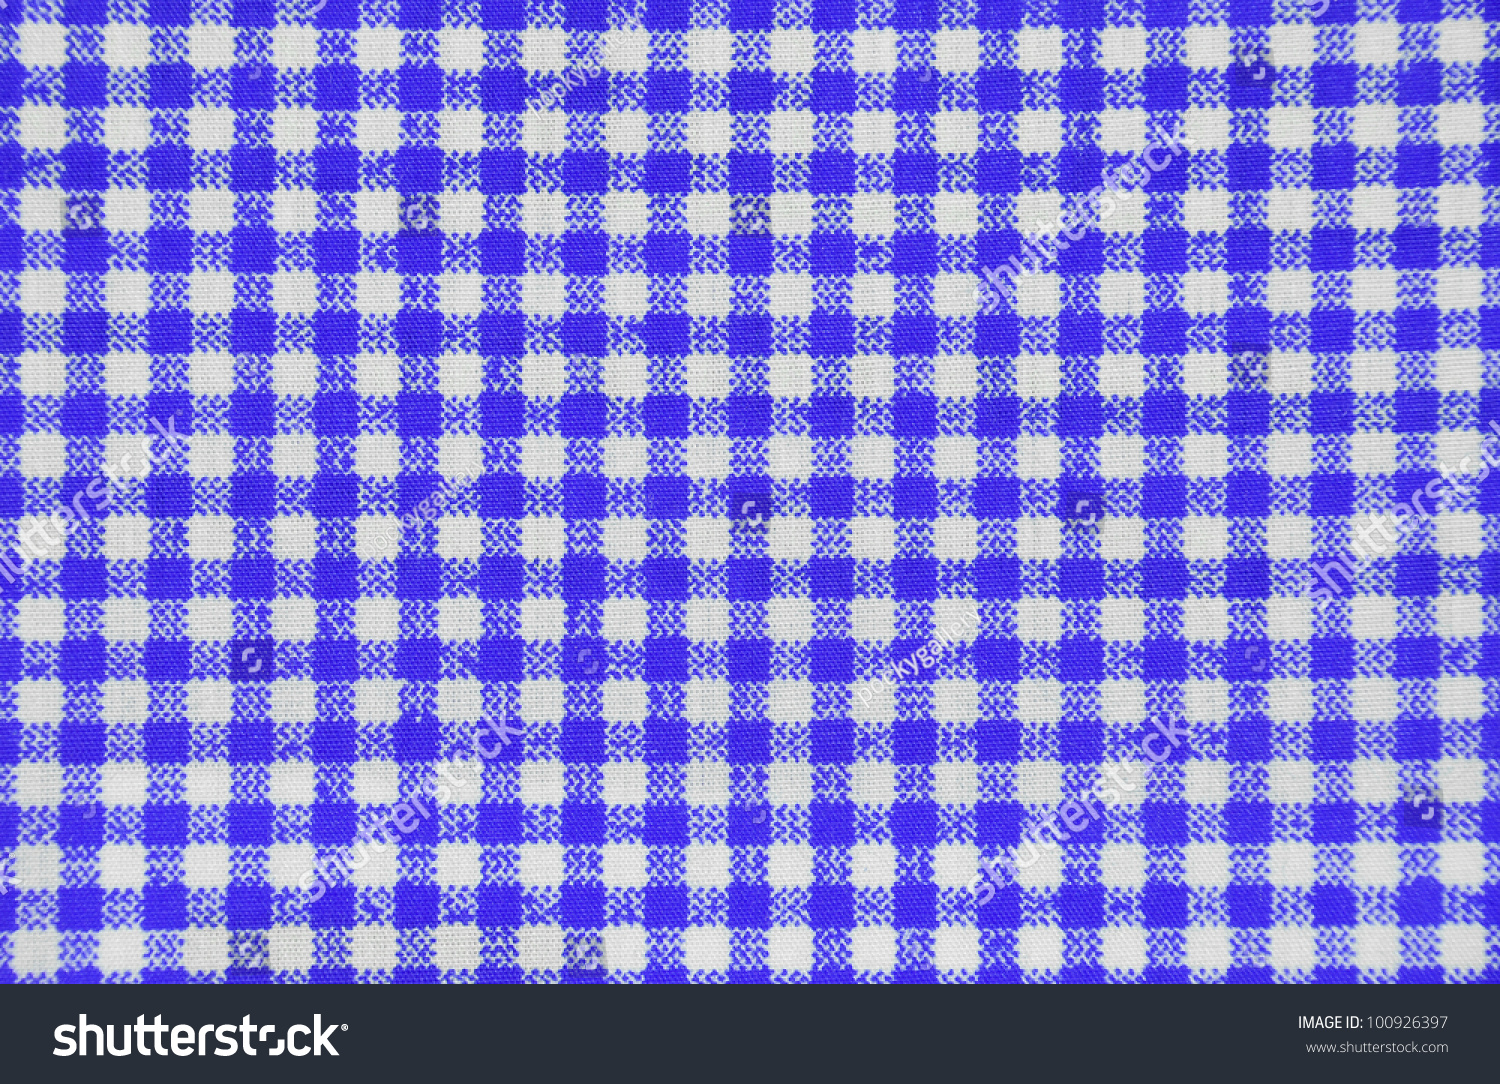 Blue tablecloth background - Blue Tablecloth Background